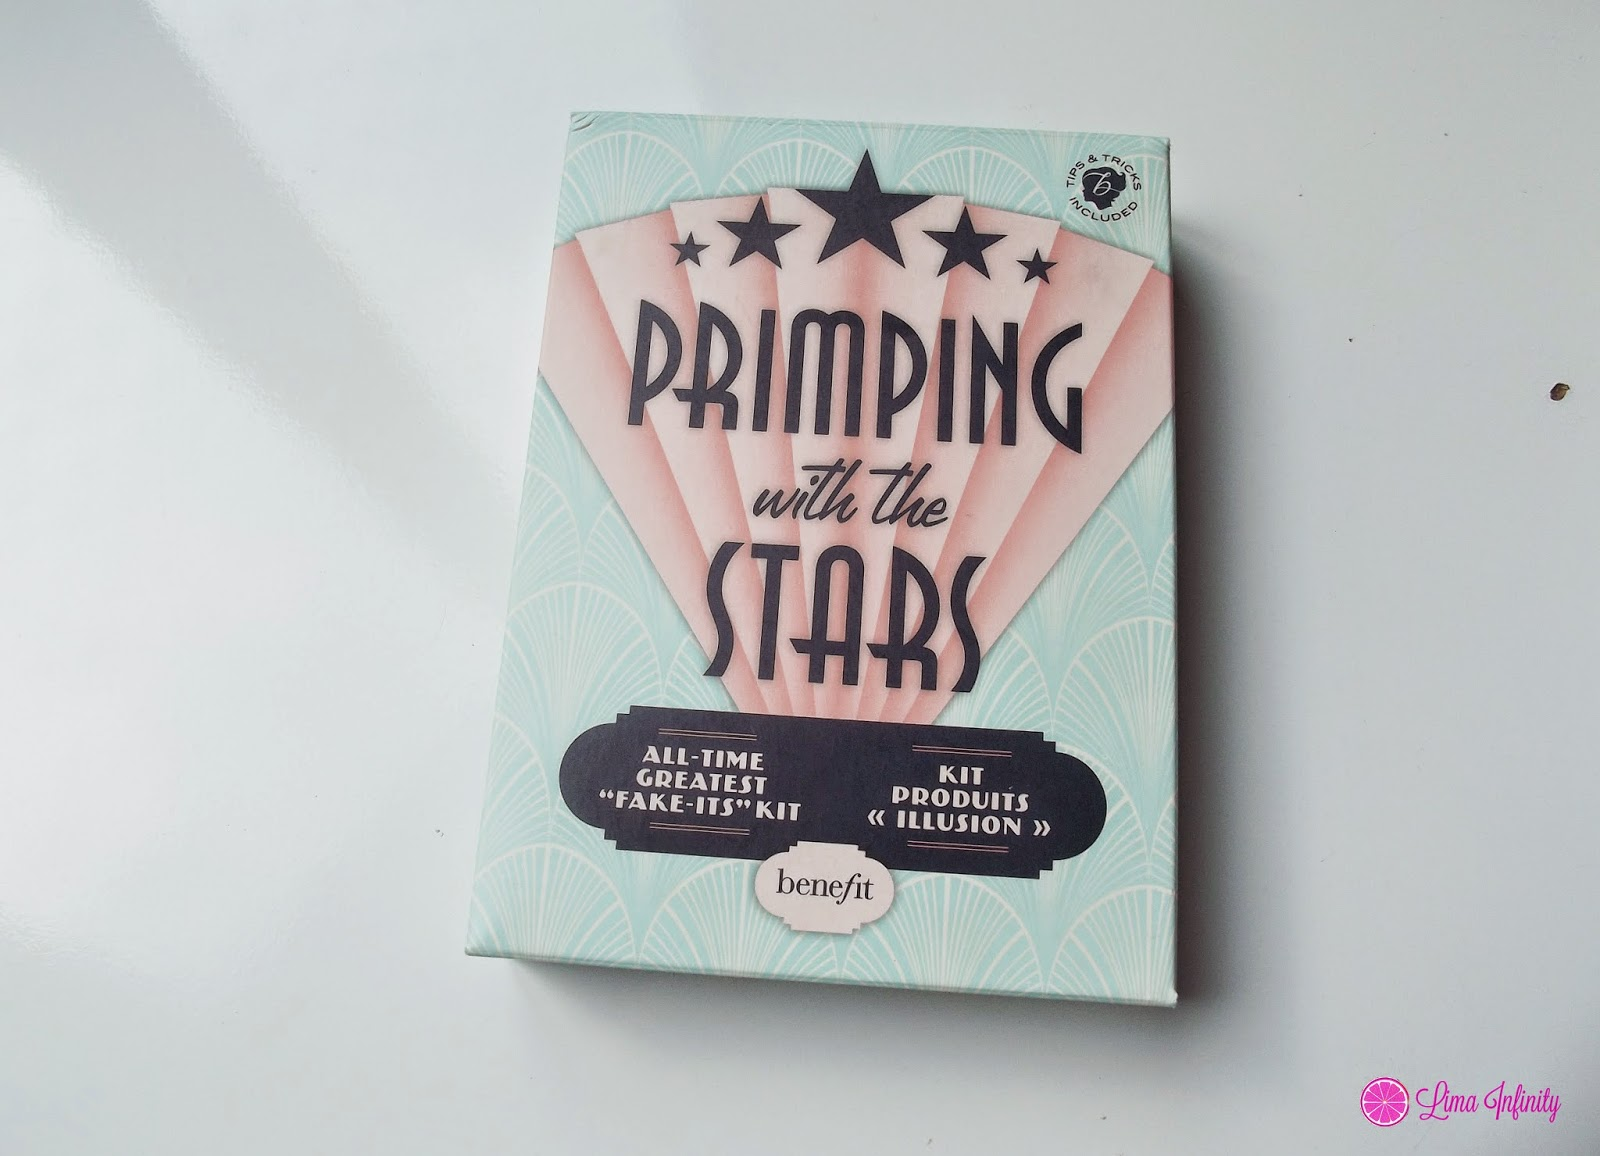 benefit-primping-with-the-stars-kit